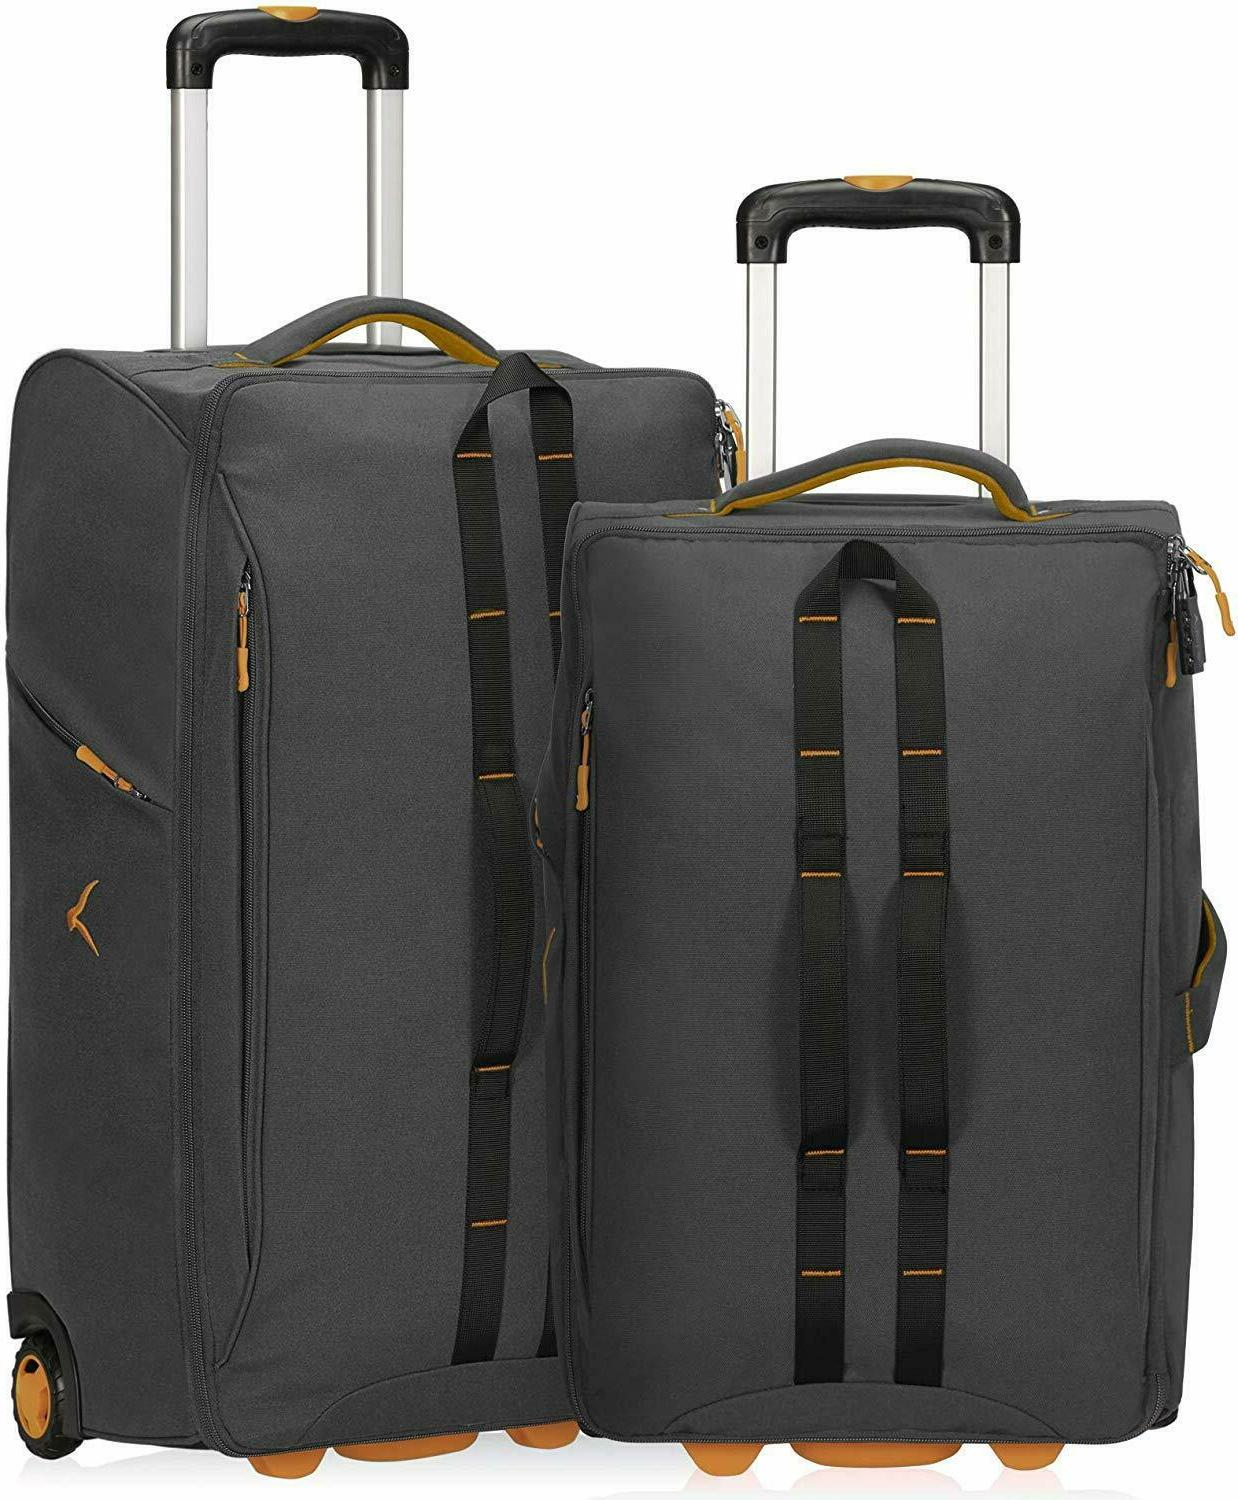 carry on luggage rolling wheeled duffel bag